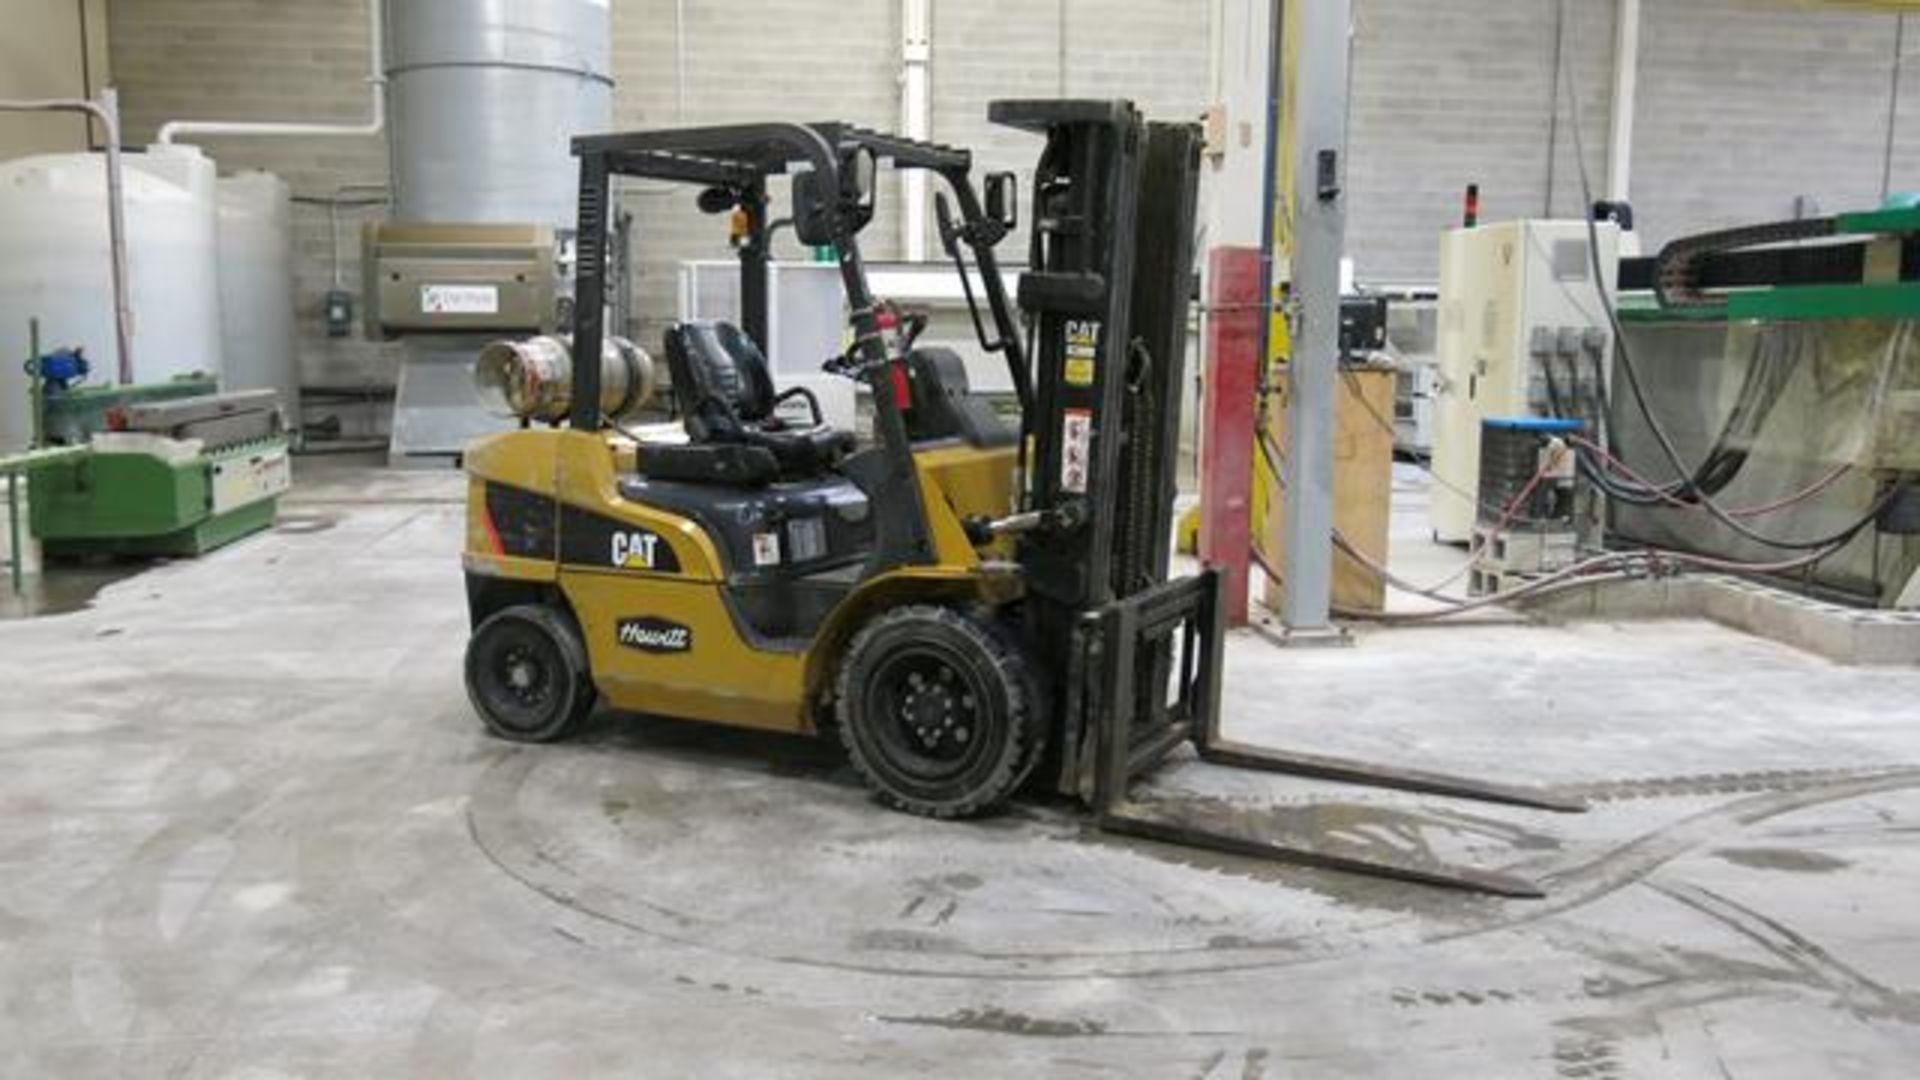 "Lot 291 - CATERPILLAR, 2P6000, 5,500 LBS., 3 STAGE LPG FORKLIFT WITH SIDESHIFT, 186"" MAXIMUM LIFT, 12,228"